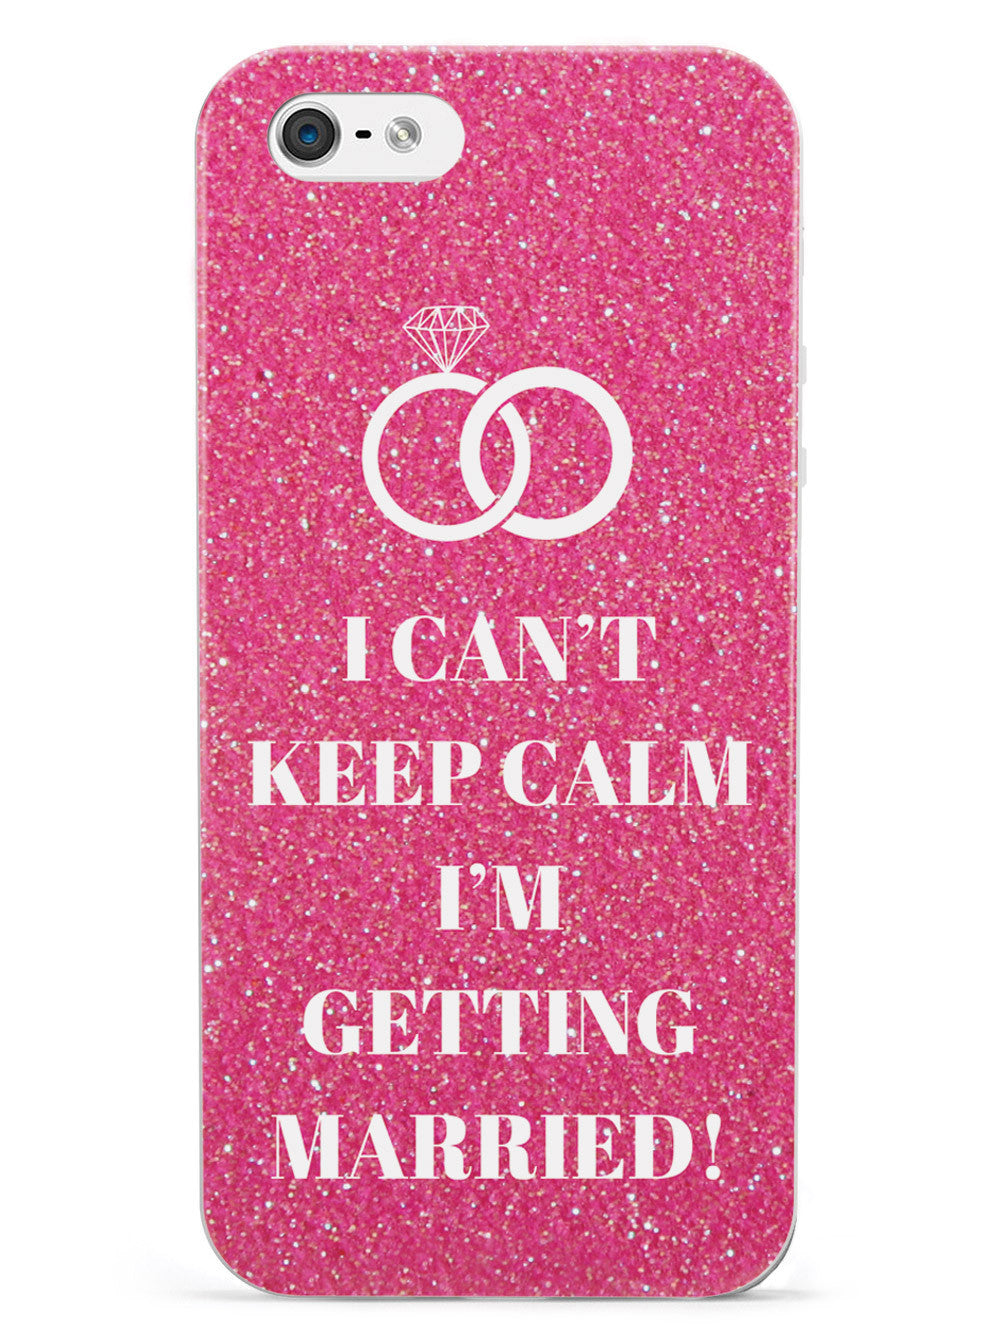 I Can't Keep Calm, I'm Getting Married! Case